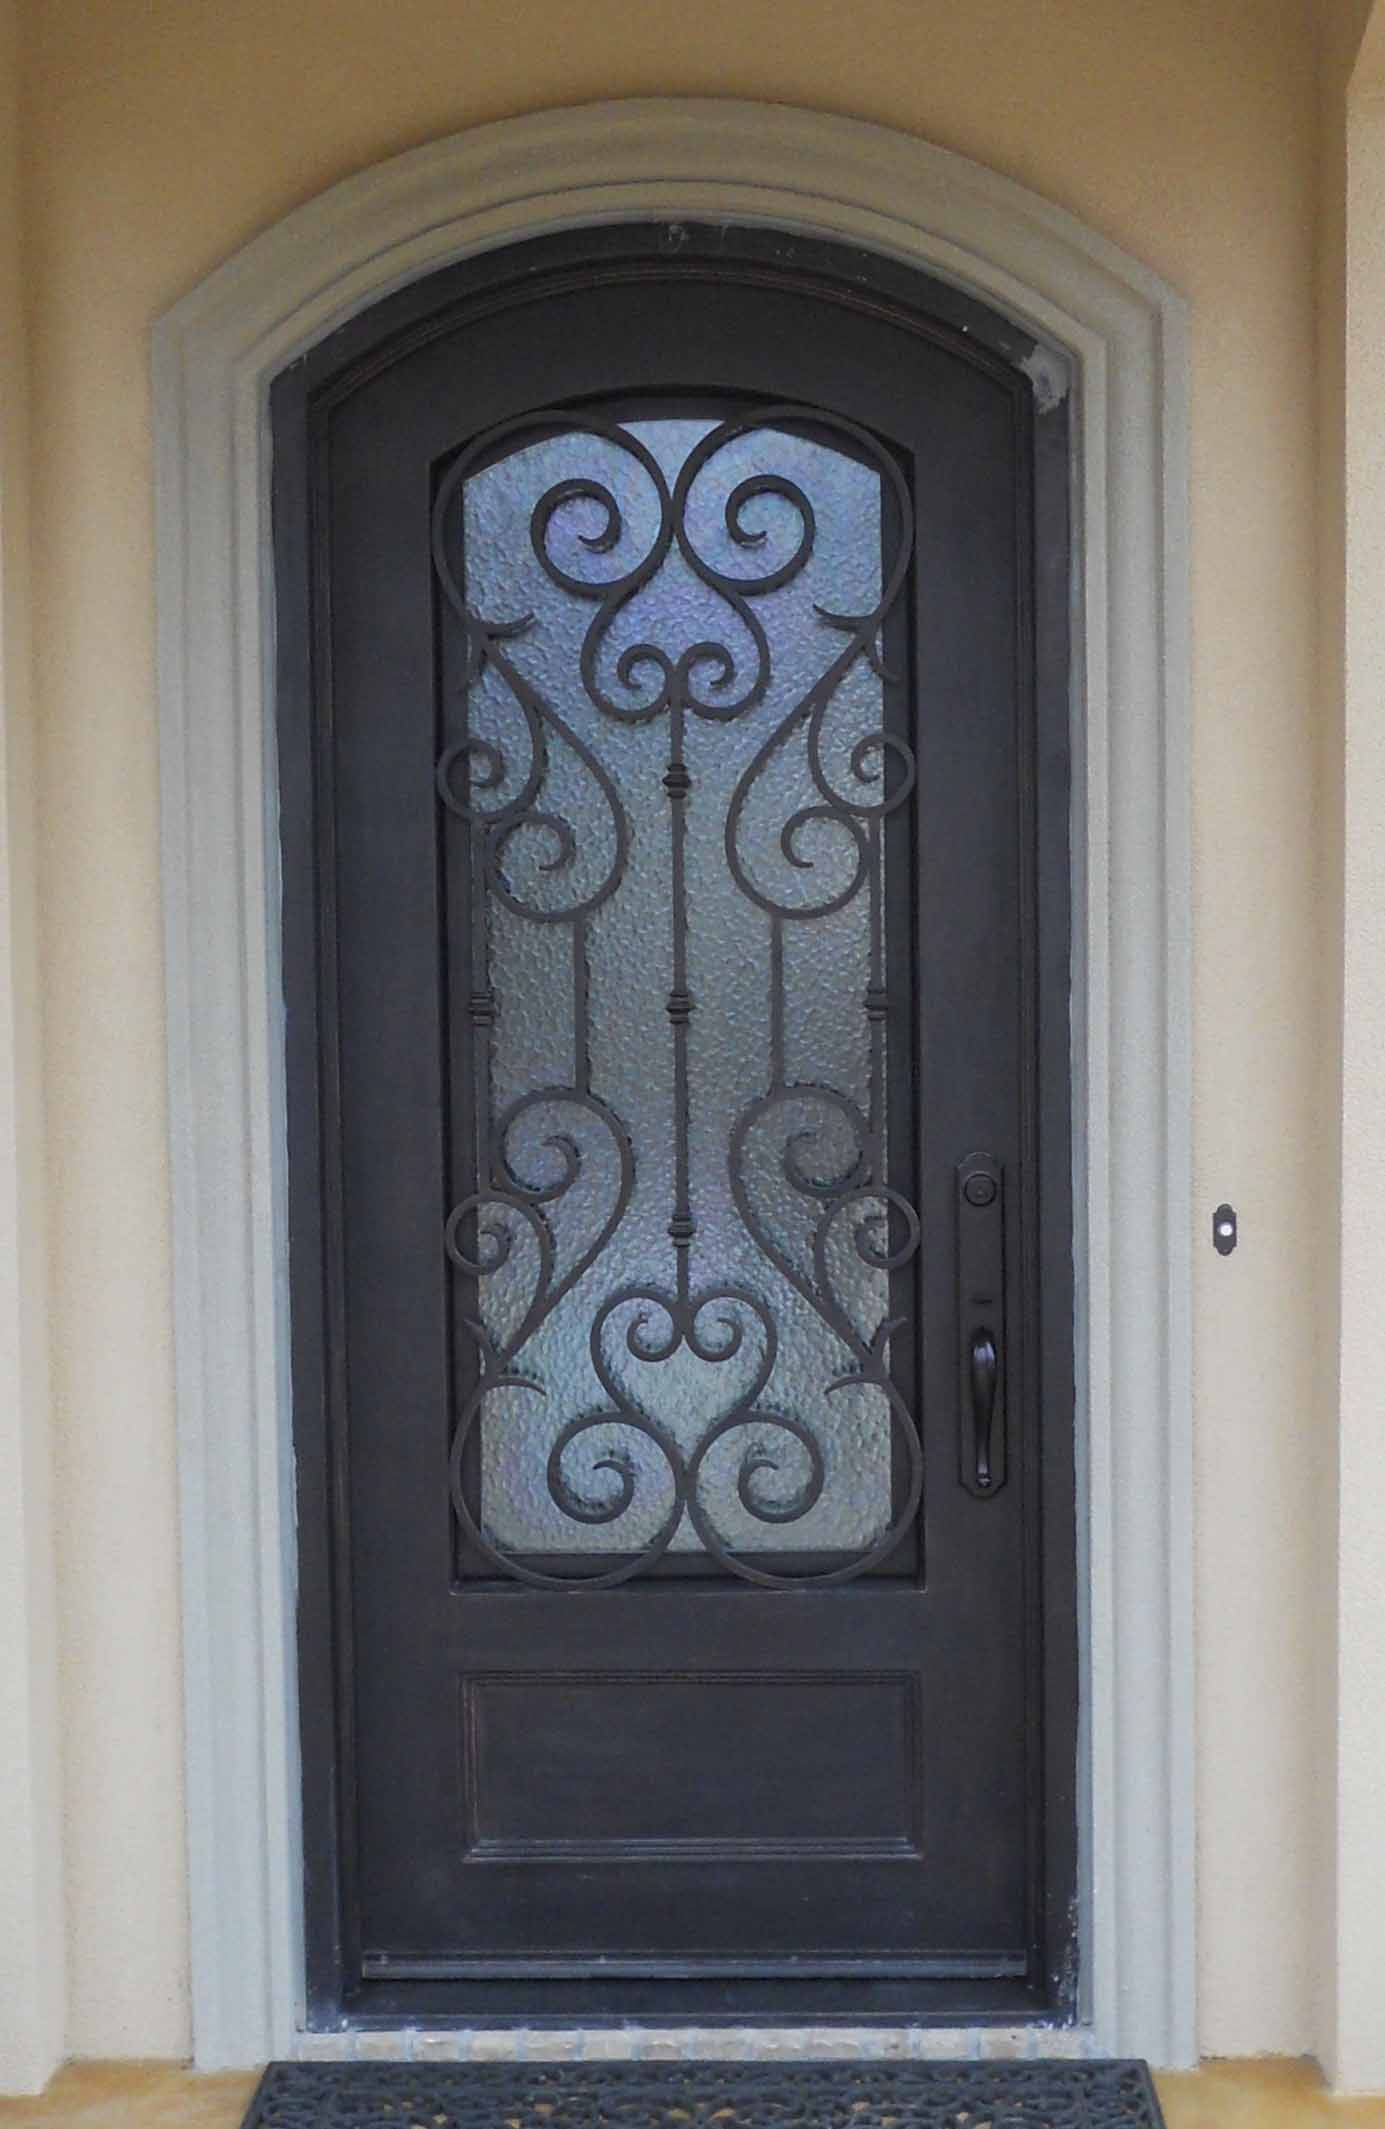 In Stock Iron Doors L Iron Doors Plus L Handcrafted Iron Doors